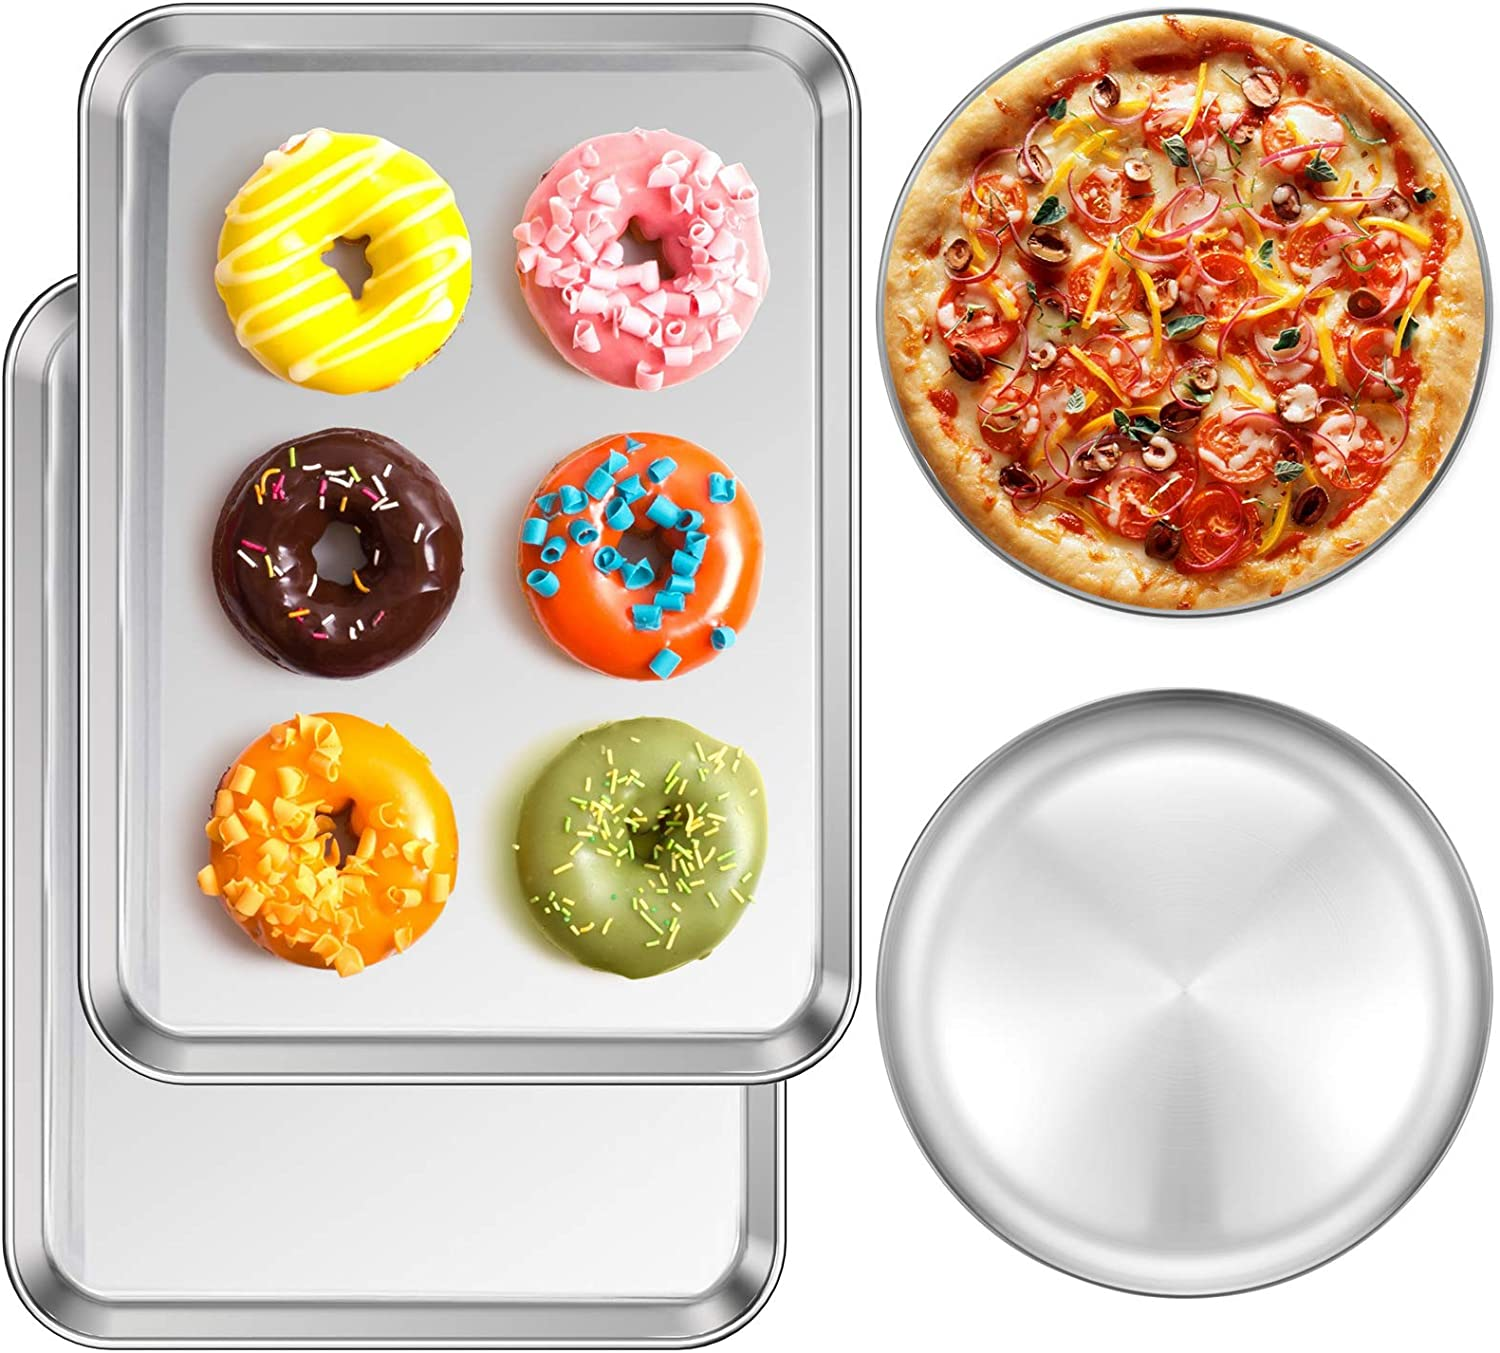 Baking Sheet Pizza Baking Pan Set of 4, Deedro Stainless Steel Cookie Sheet 16 x 12 x 1 inch, Round Pizza Tray 10 inch, Non Toxic & Healthy Oven Tray Bakeware for Commercial or Home Use